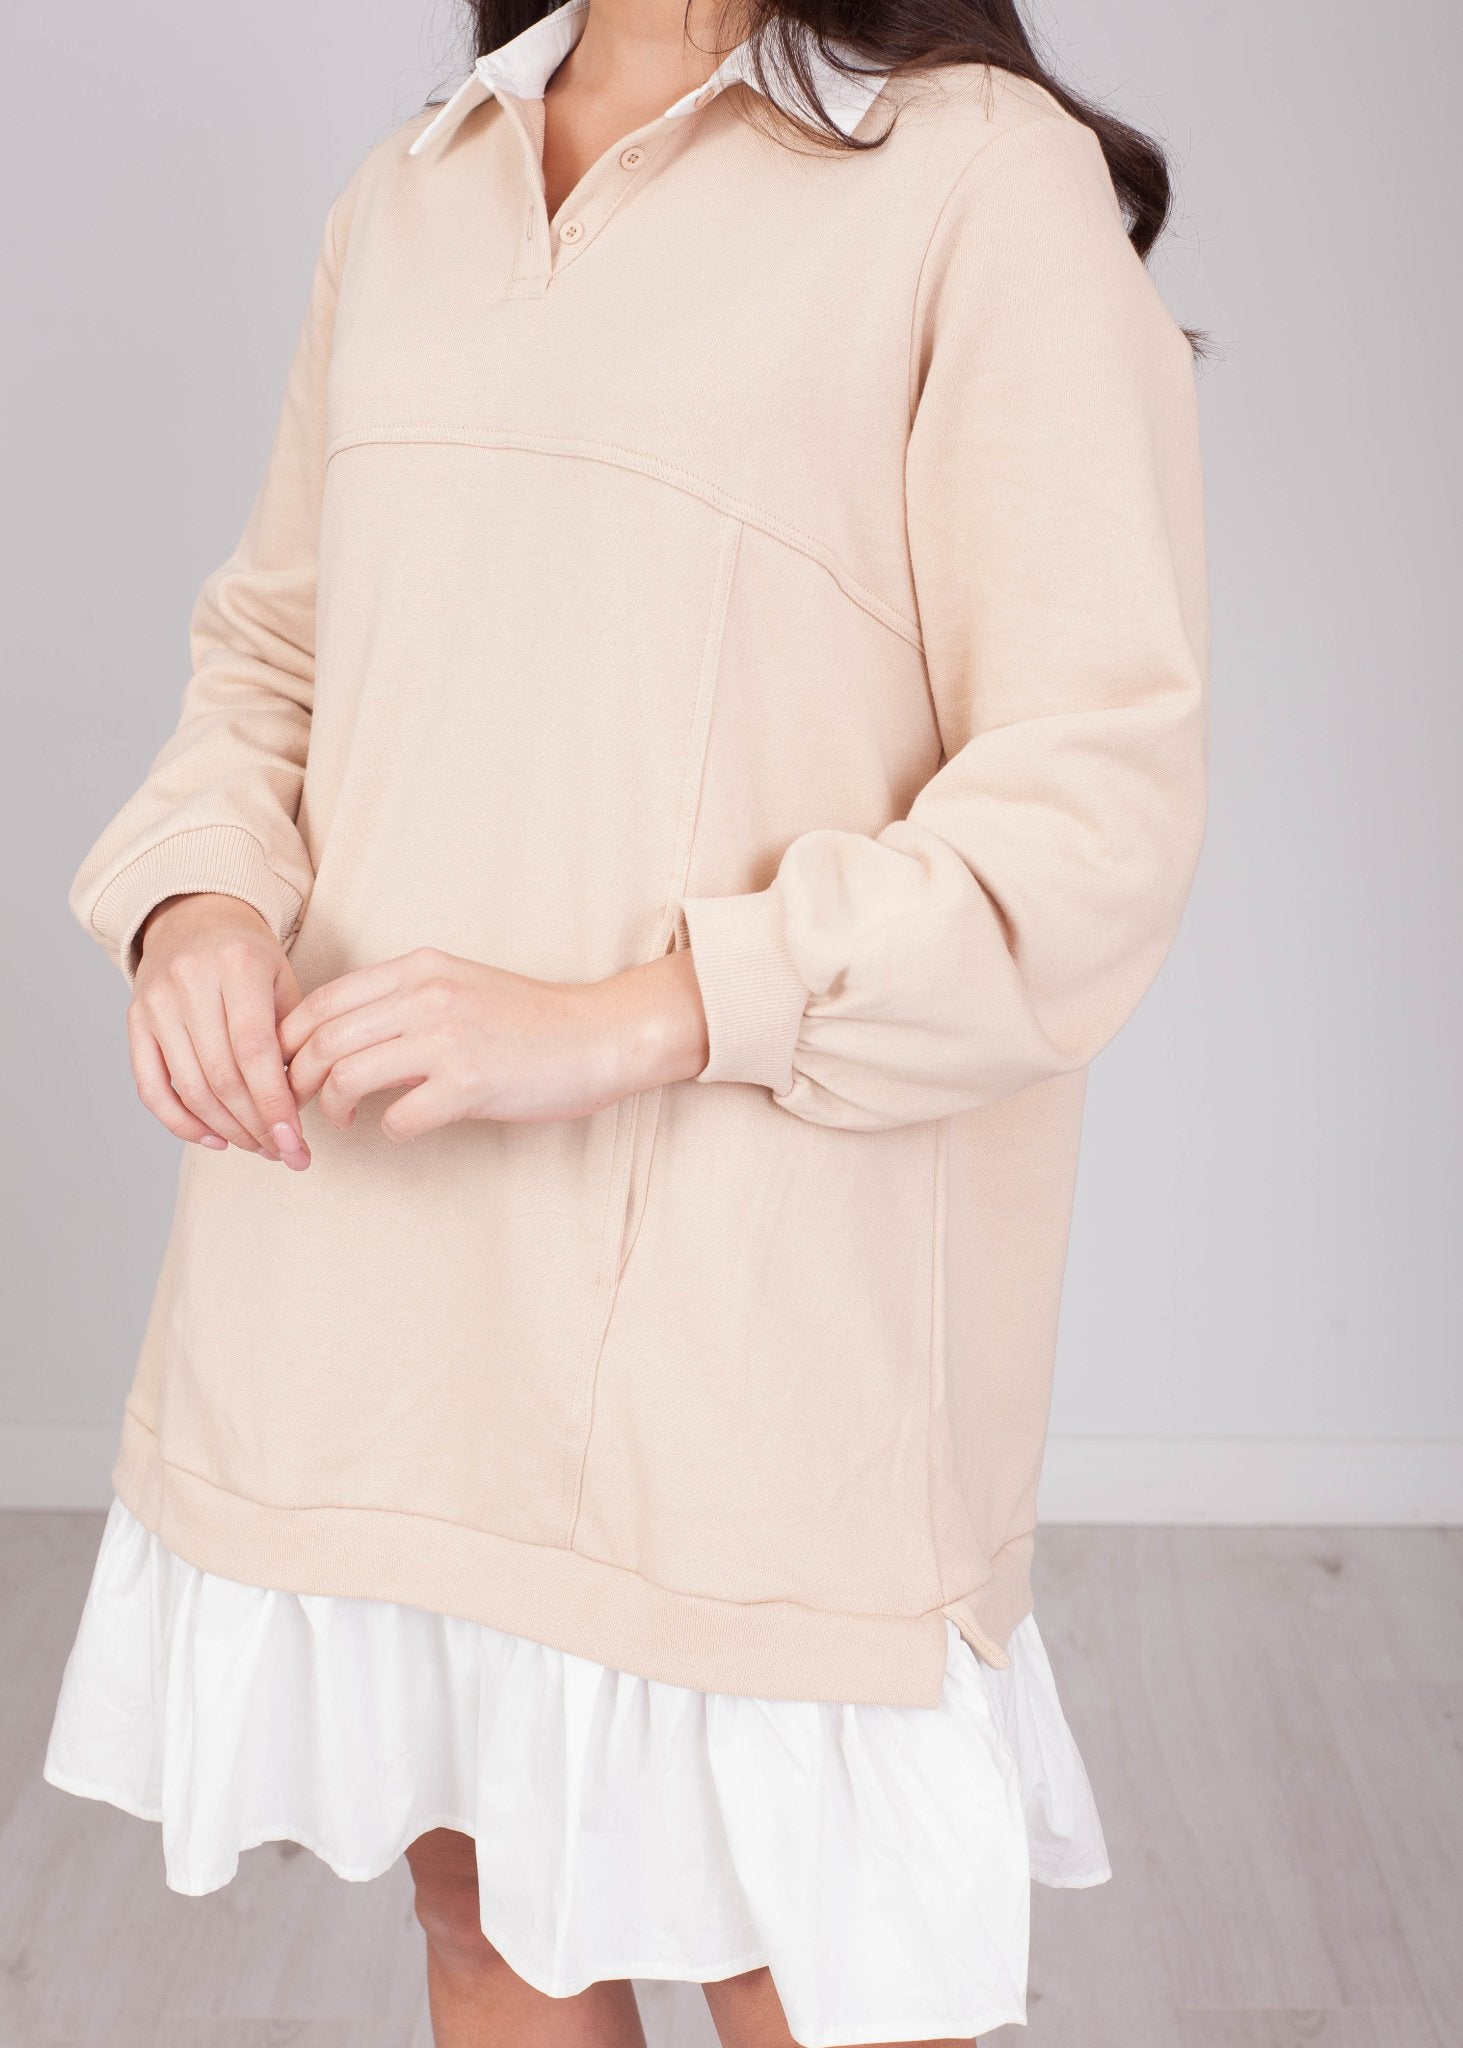 Emilia Beige Shirt & Jumper Dress - The Walk in Wardrobe